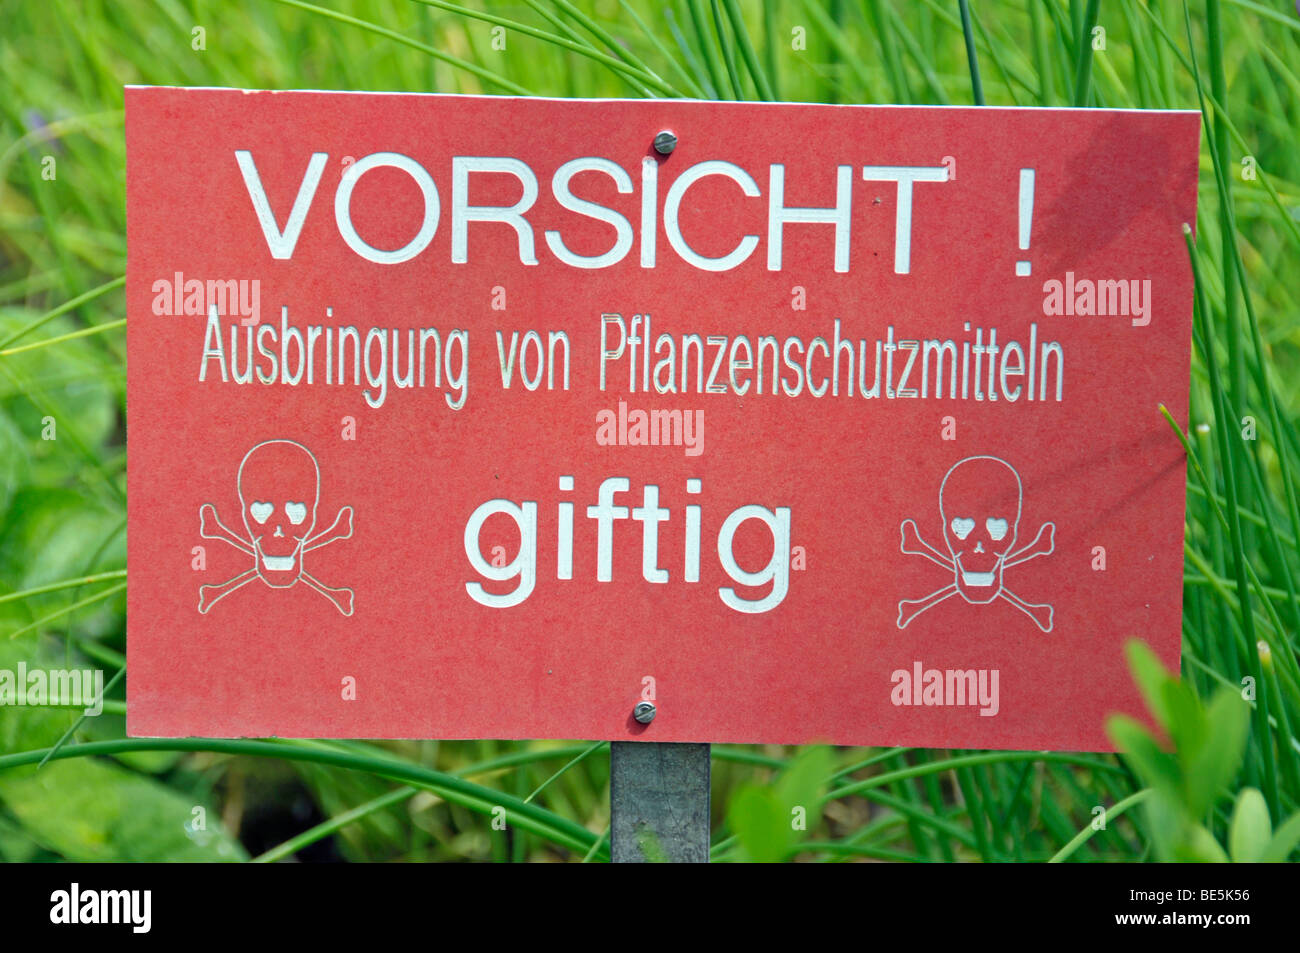 Warning sign, plant protection has been sprayed, toxic, Germany, Europe - Stock Image